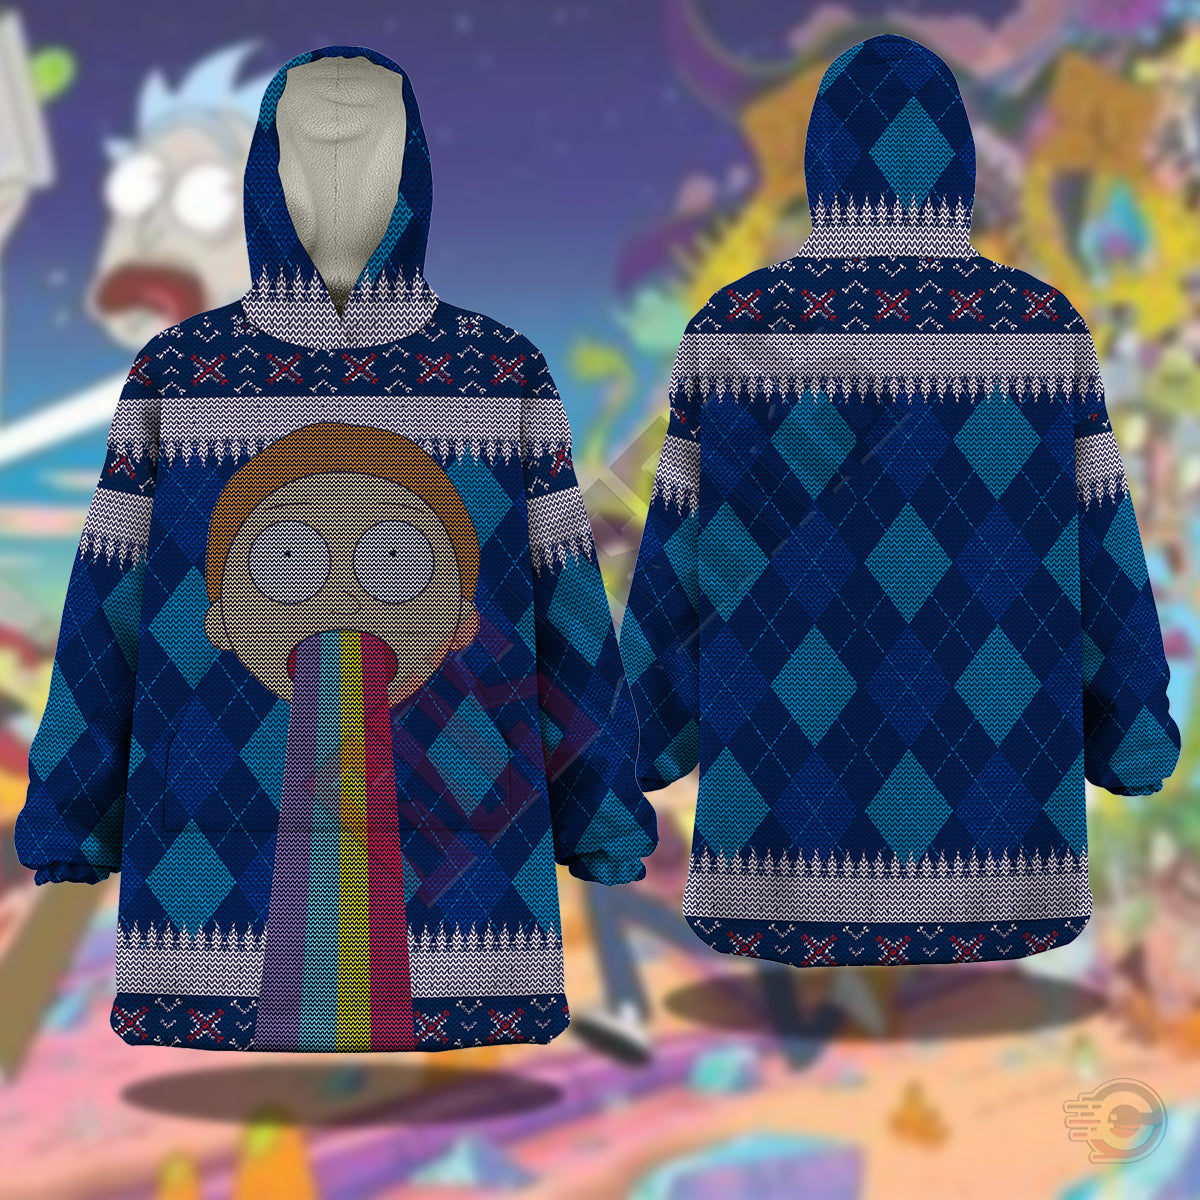 Rick and Morty : Morty Rick Snug